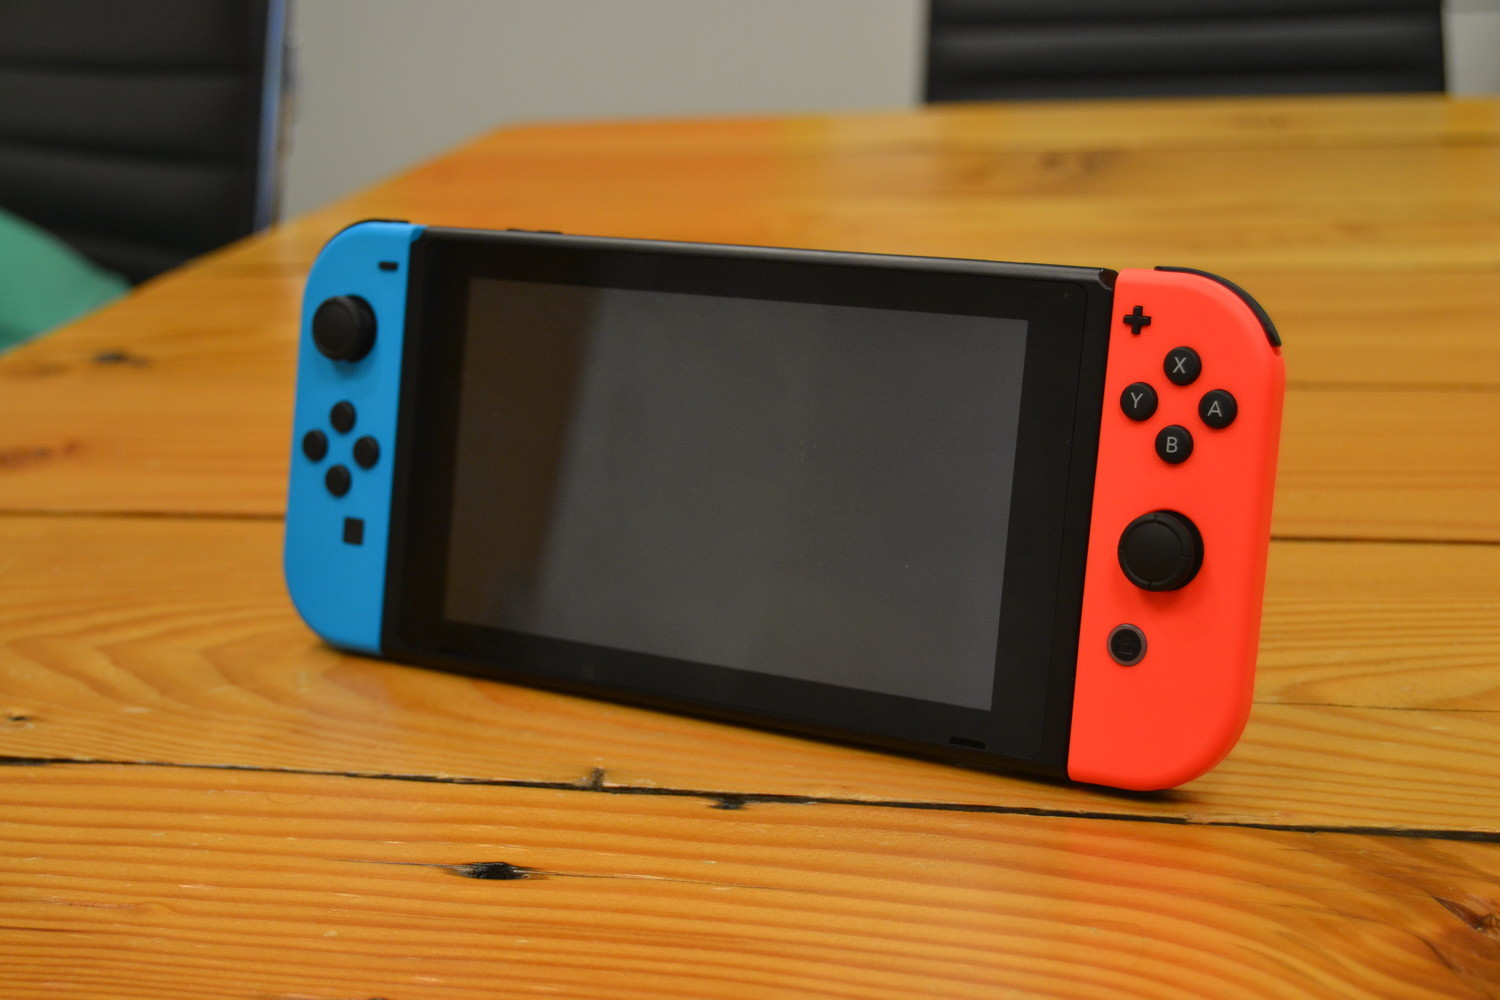 Nintendo reportedly doubling Switch production after strong early sales